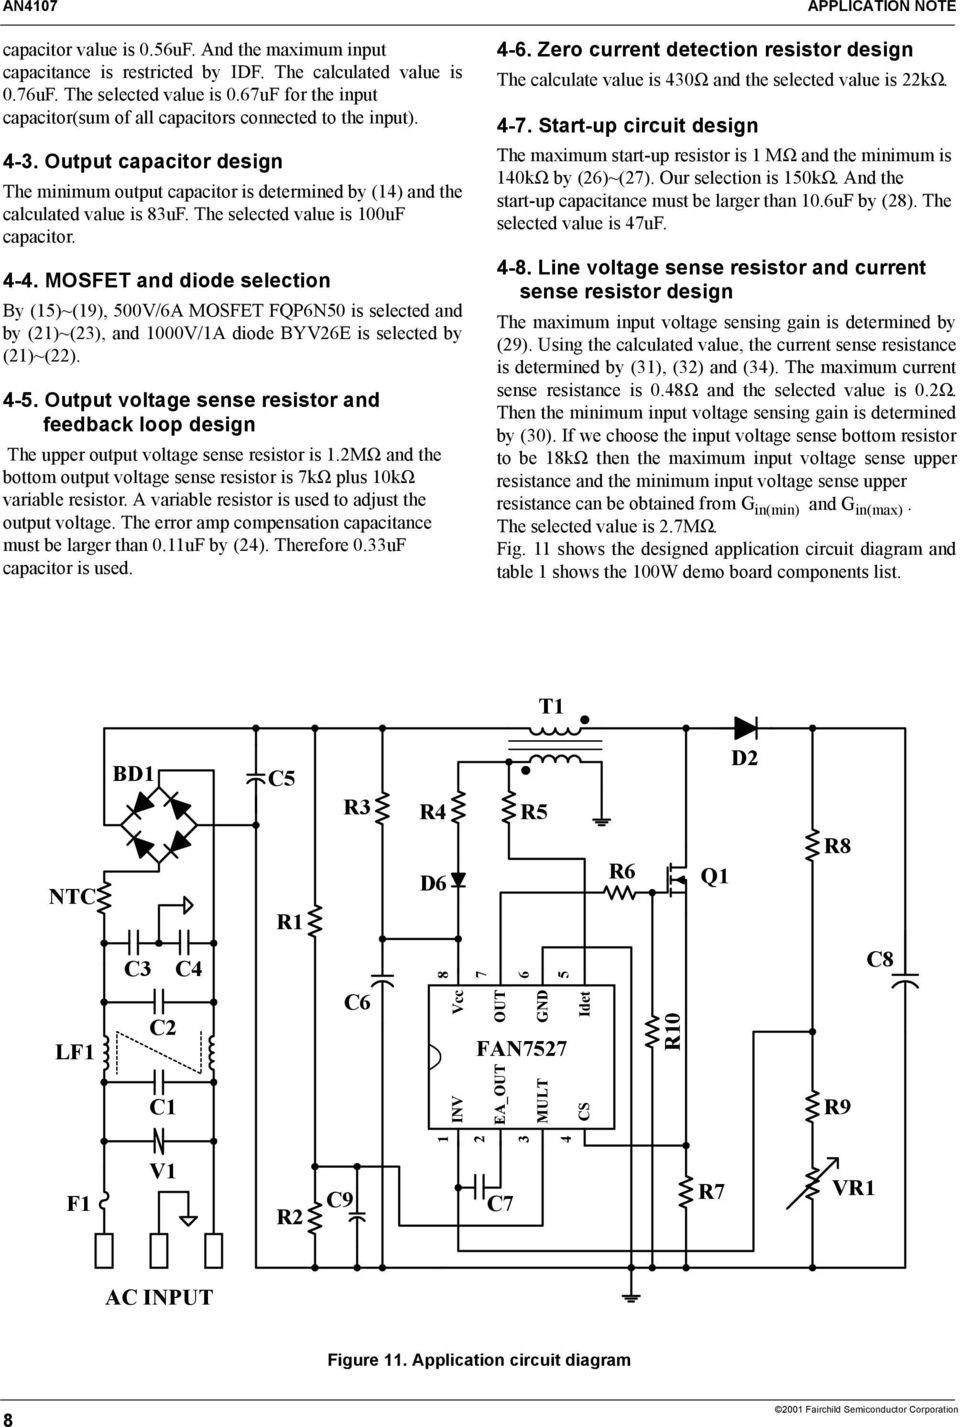 Application Note An Pdf 555watchdogtimercircuit Digital Logic Purpose Of Diode In This 555 Circuit Diagram 8 The Selected Value Is 100uf Capacitor 4 Mosfet And Selection By